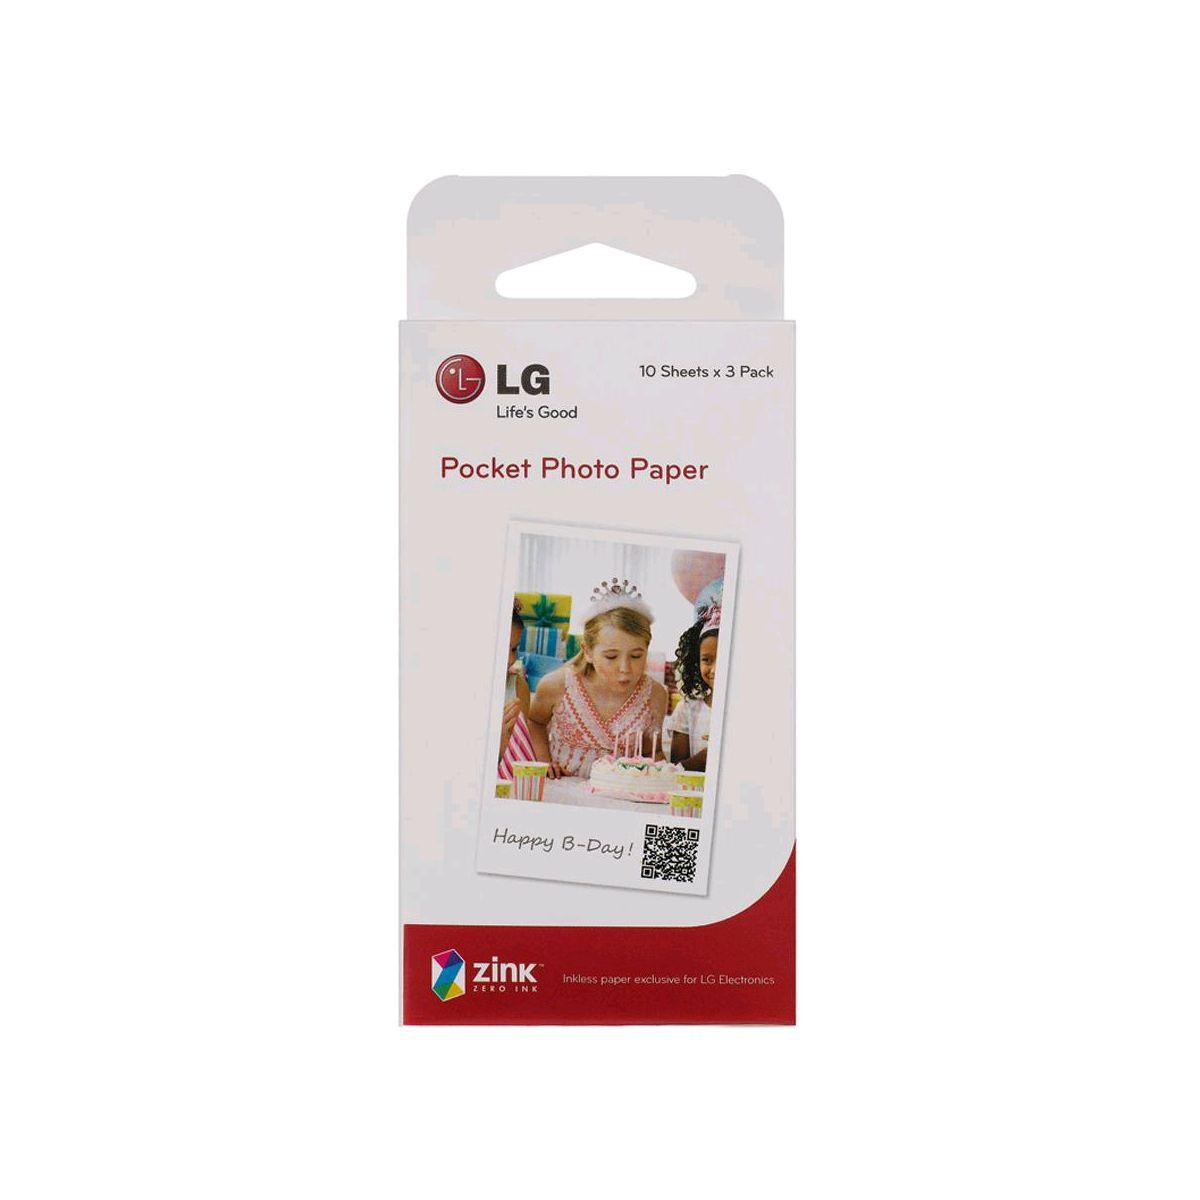 Papier photo instantan� lg ps2203 pocket photo 3x10f